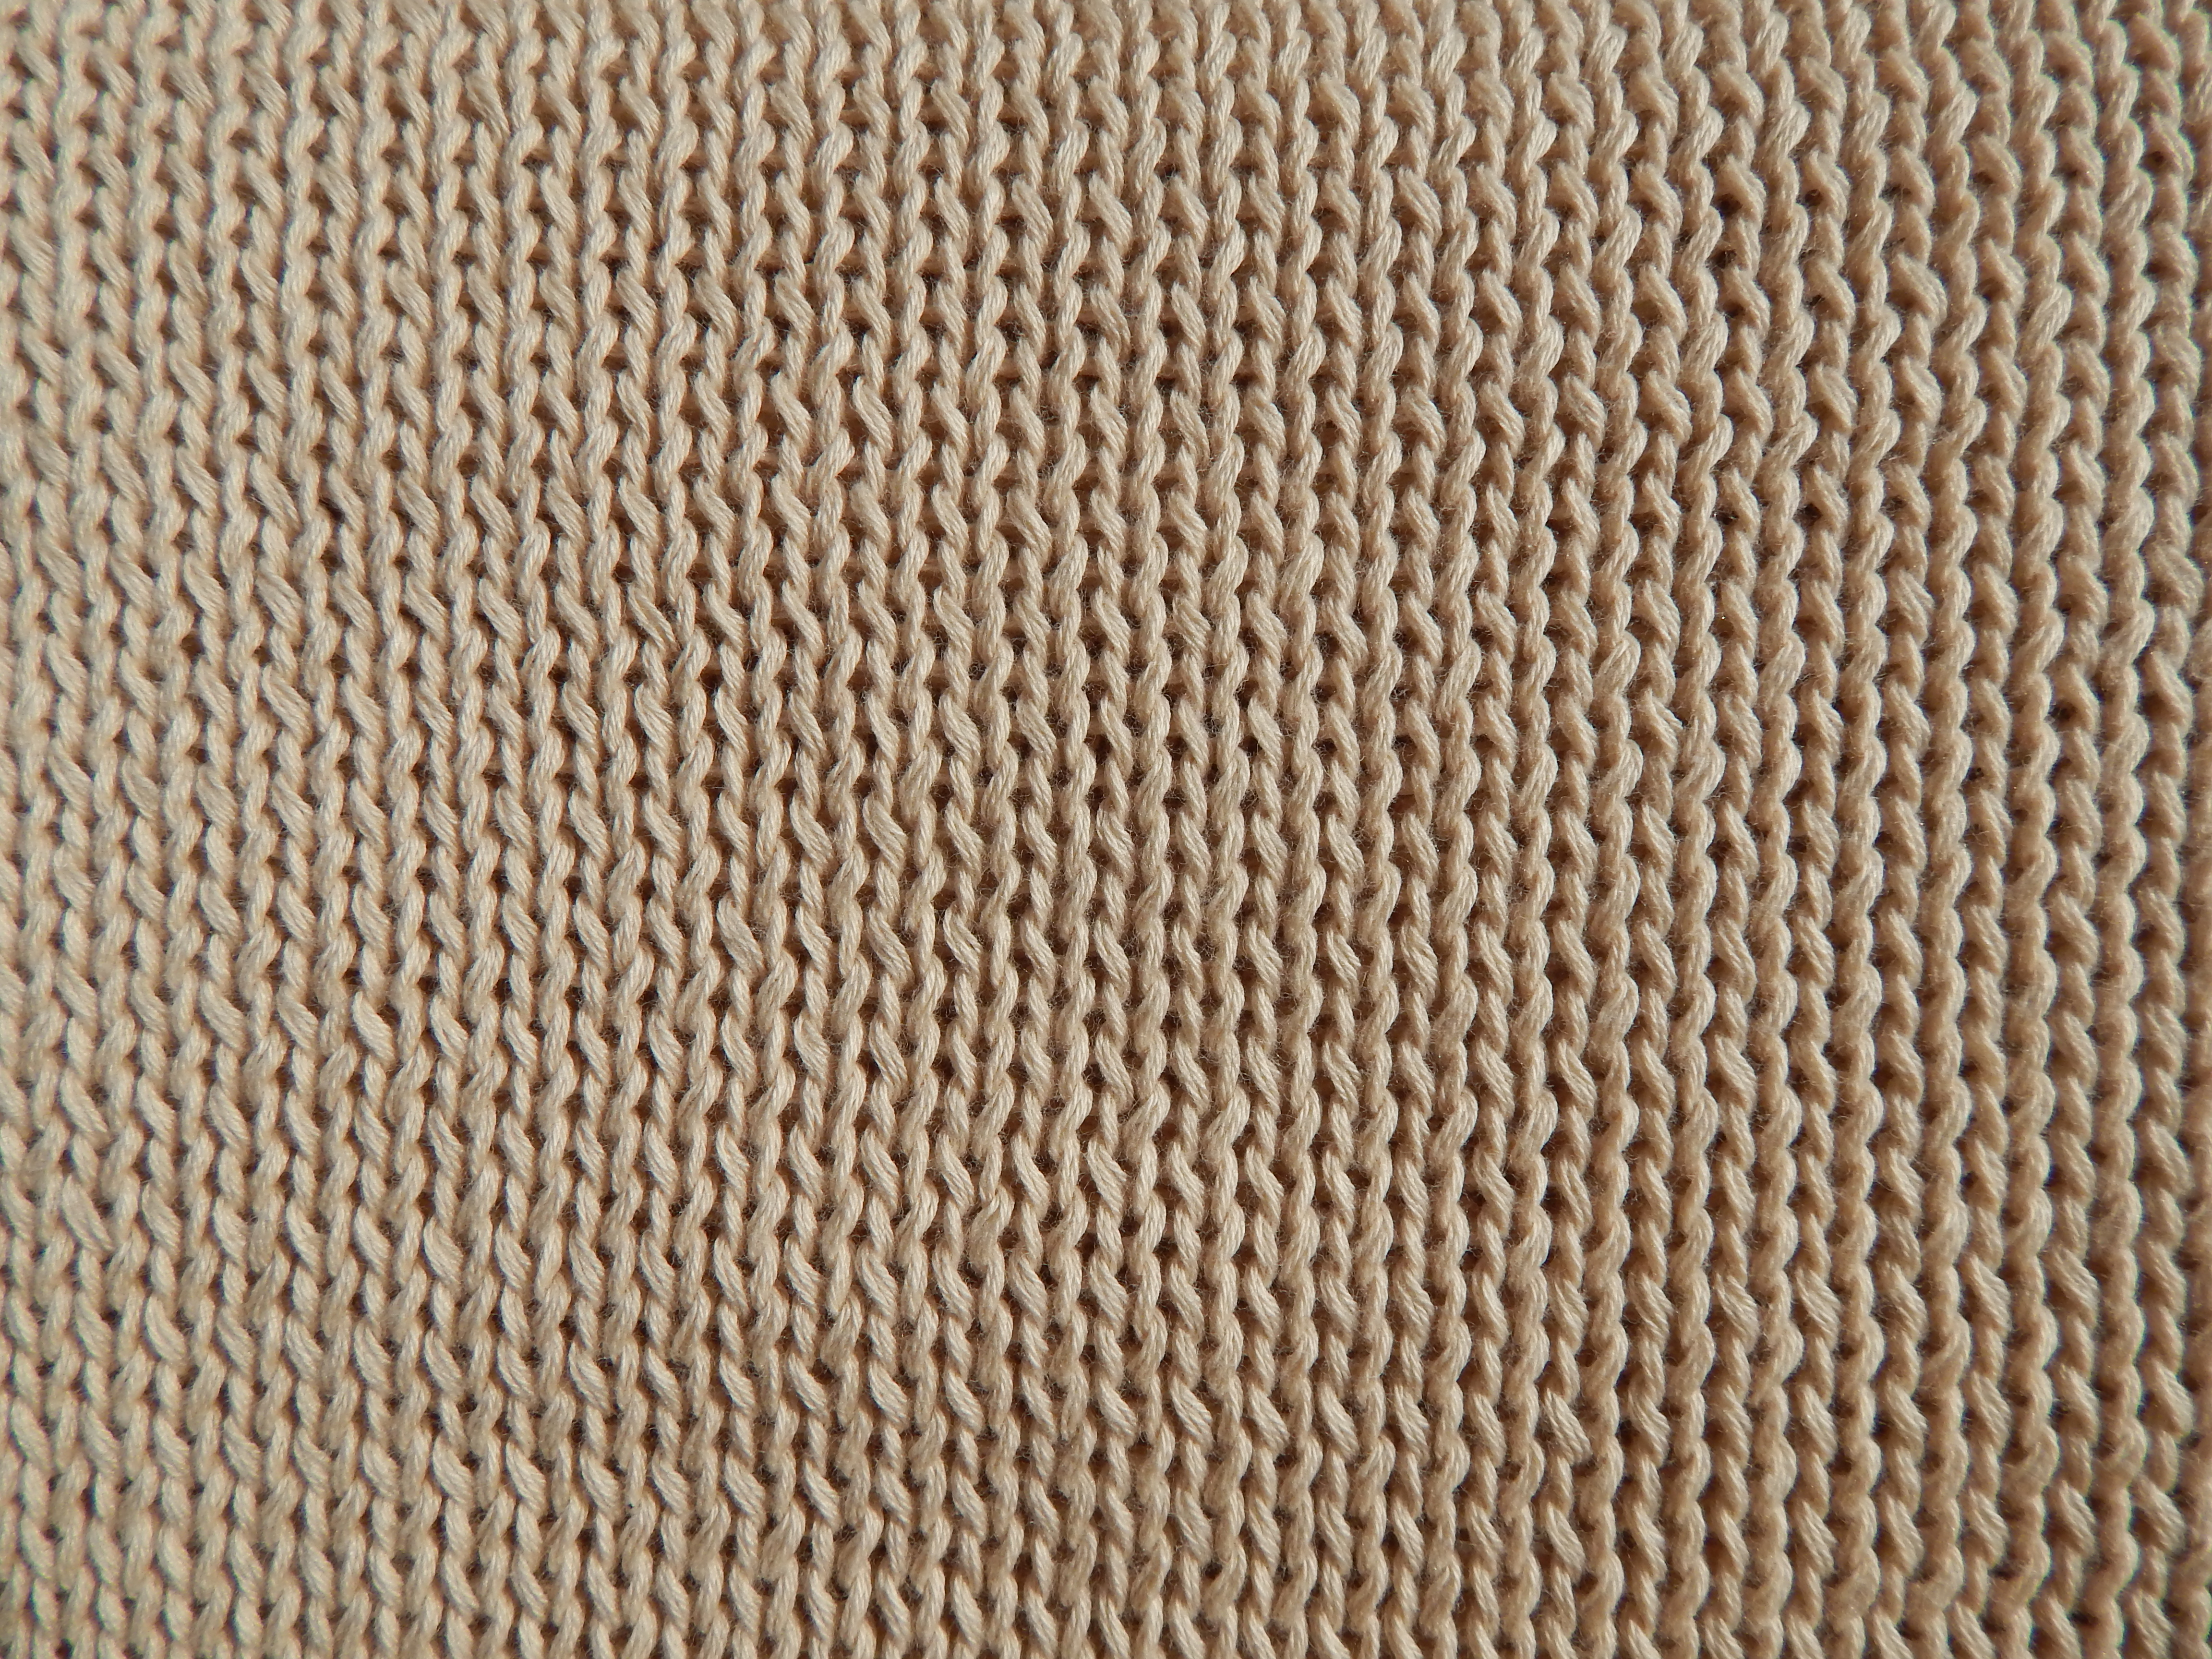 Free Photo Fabric Texture Brown Fabric Texture Free Download Jooinn